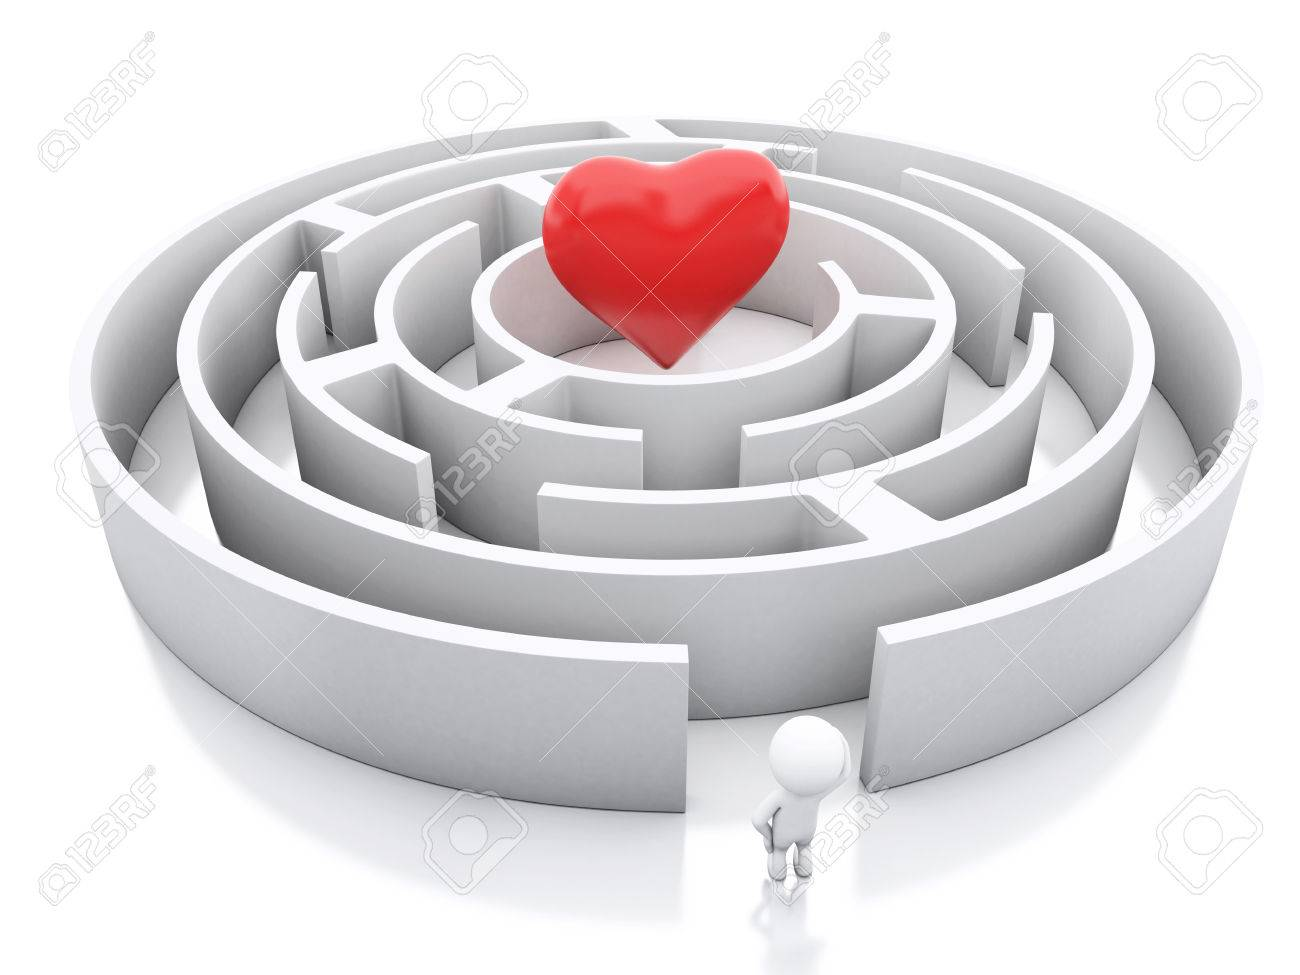 3d Renderer Image White People With A Maze And A Heart In Middle